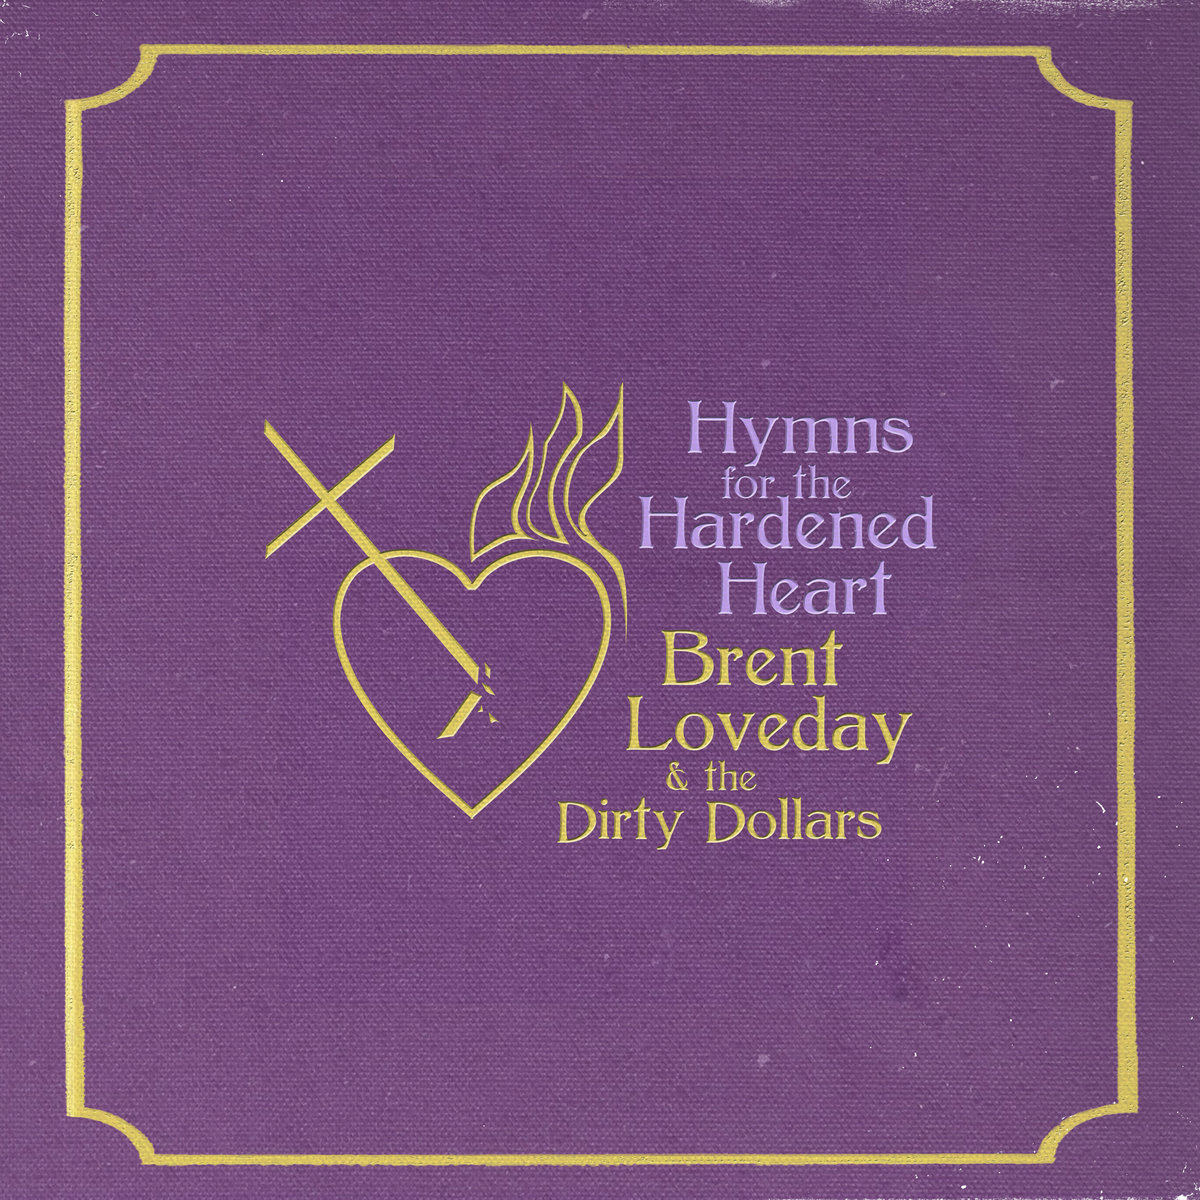 Hymns for the Hardened Heart | Brent Loveday